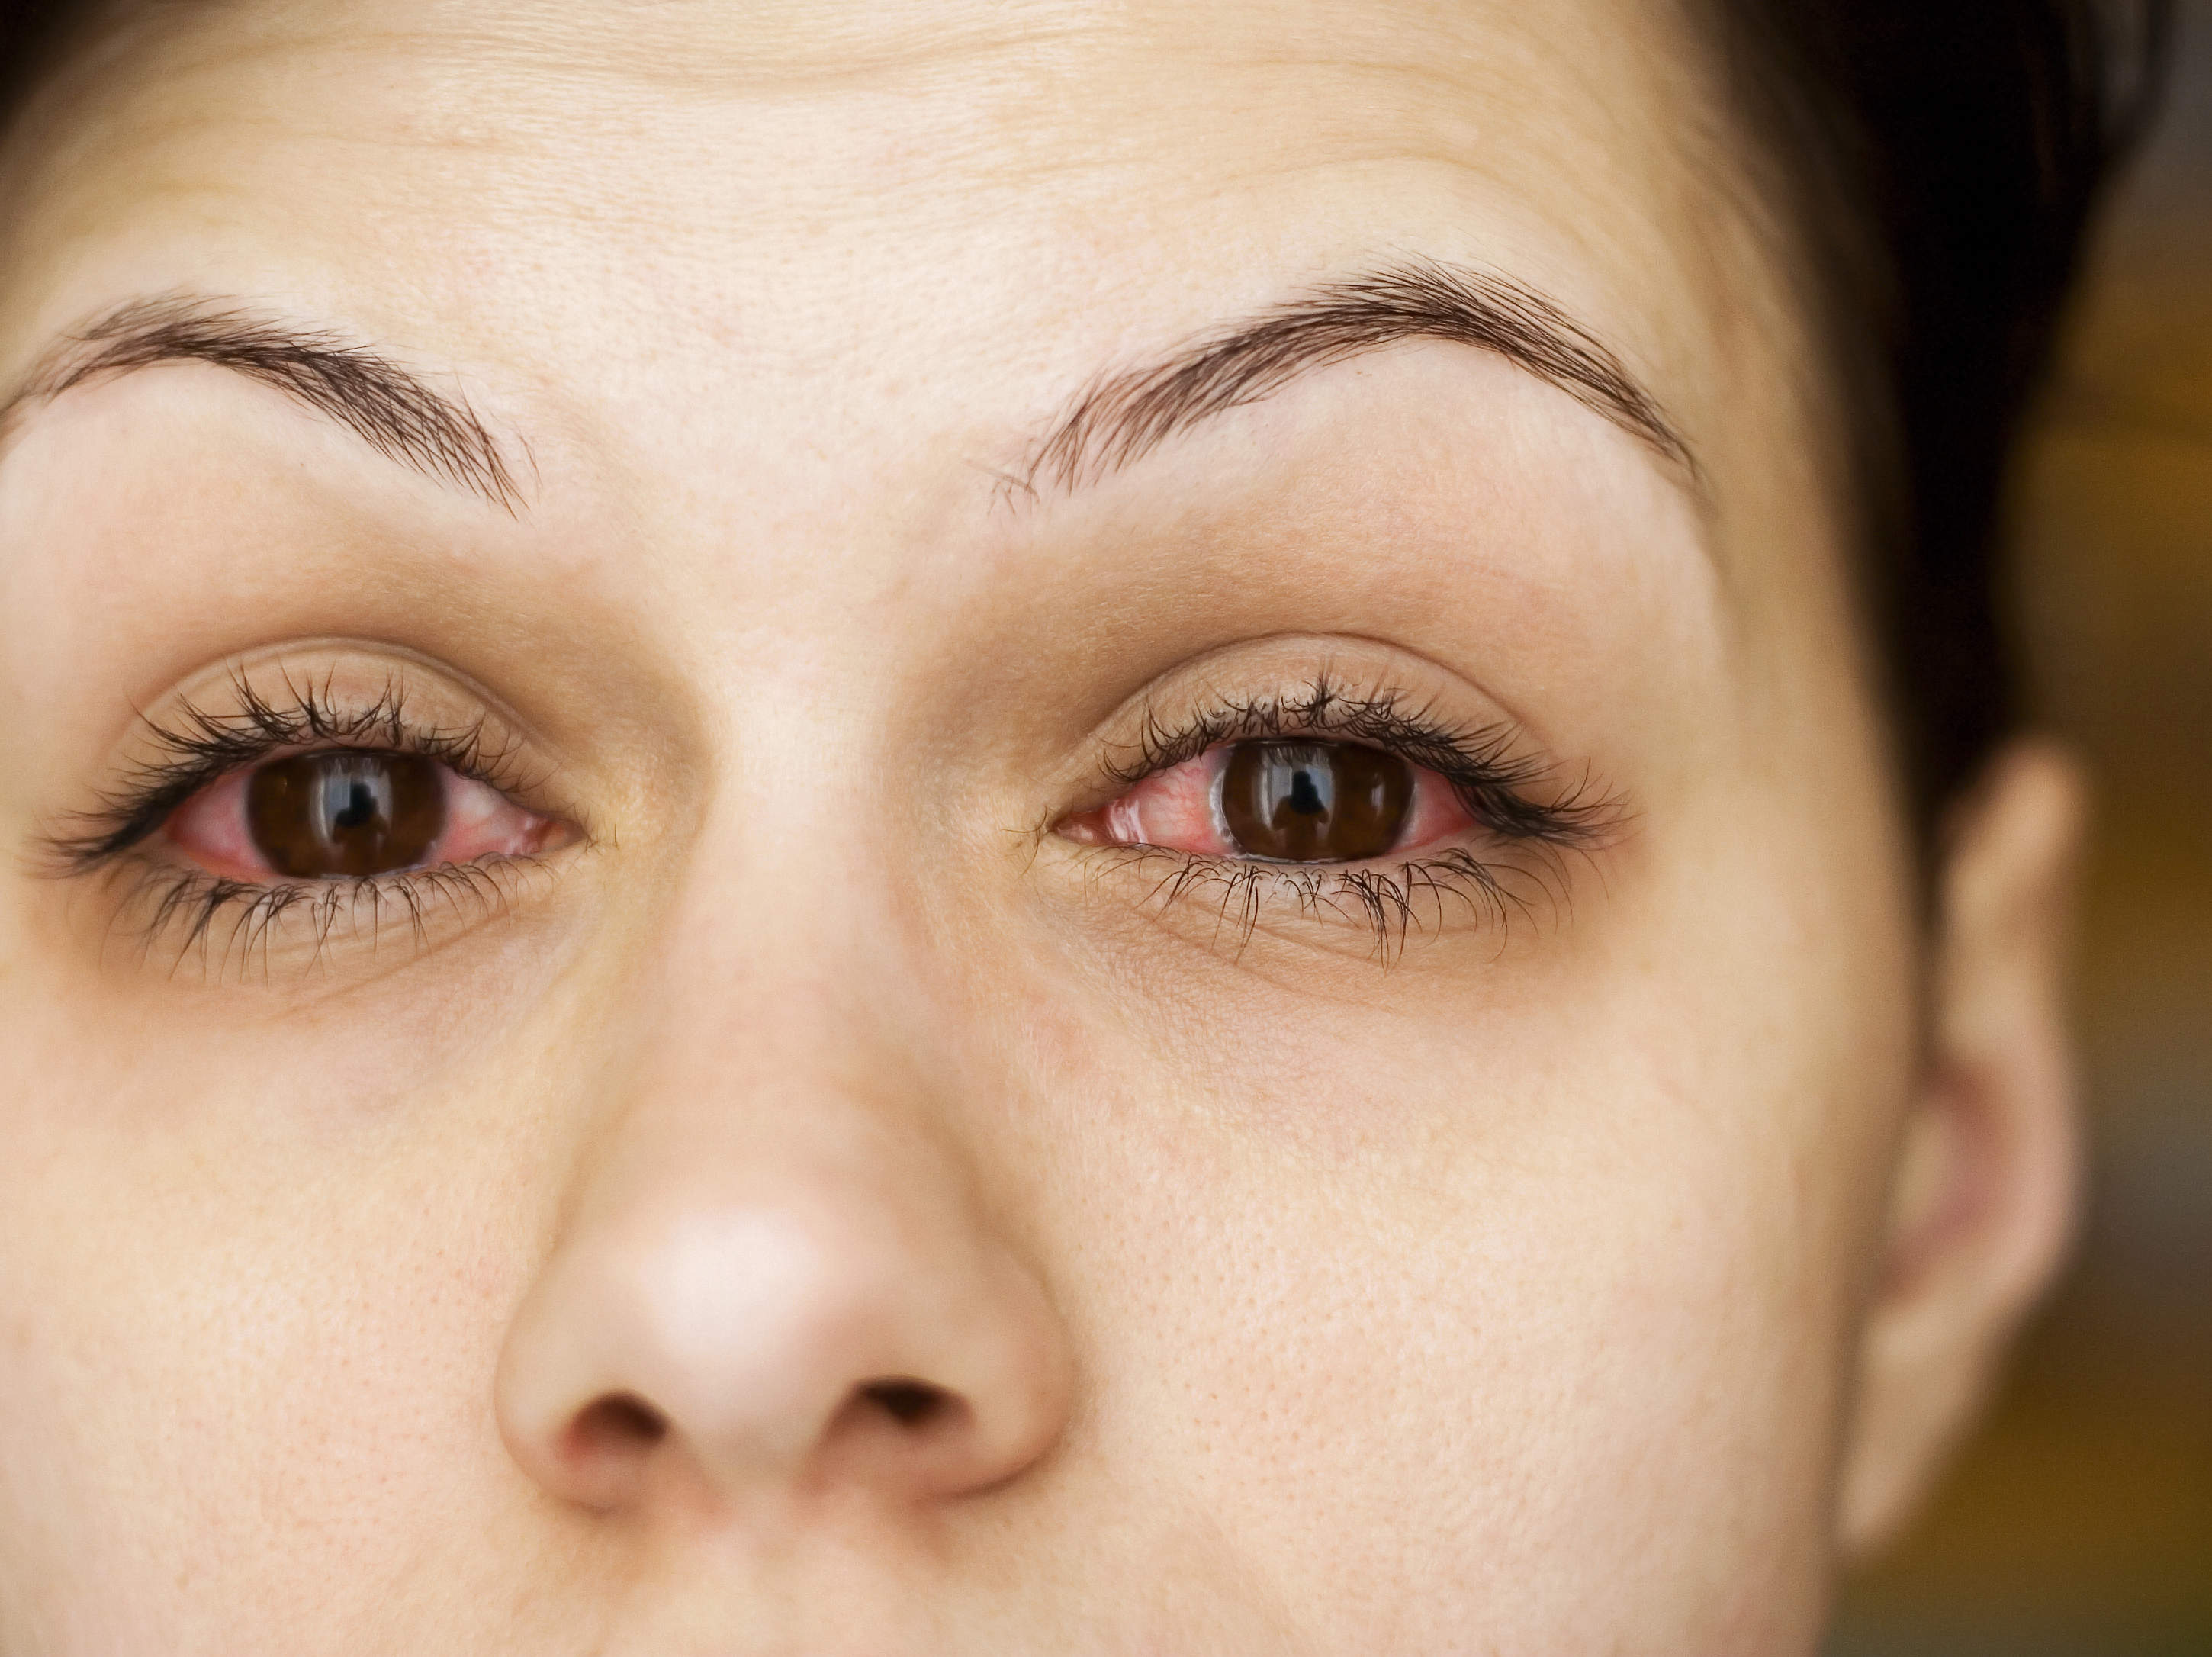 Pain in eye after sex